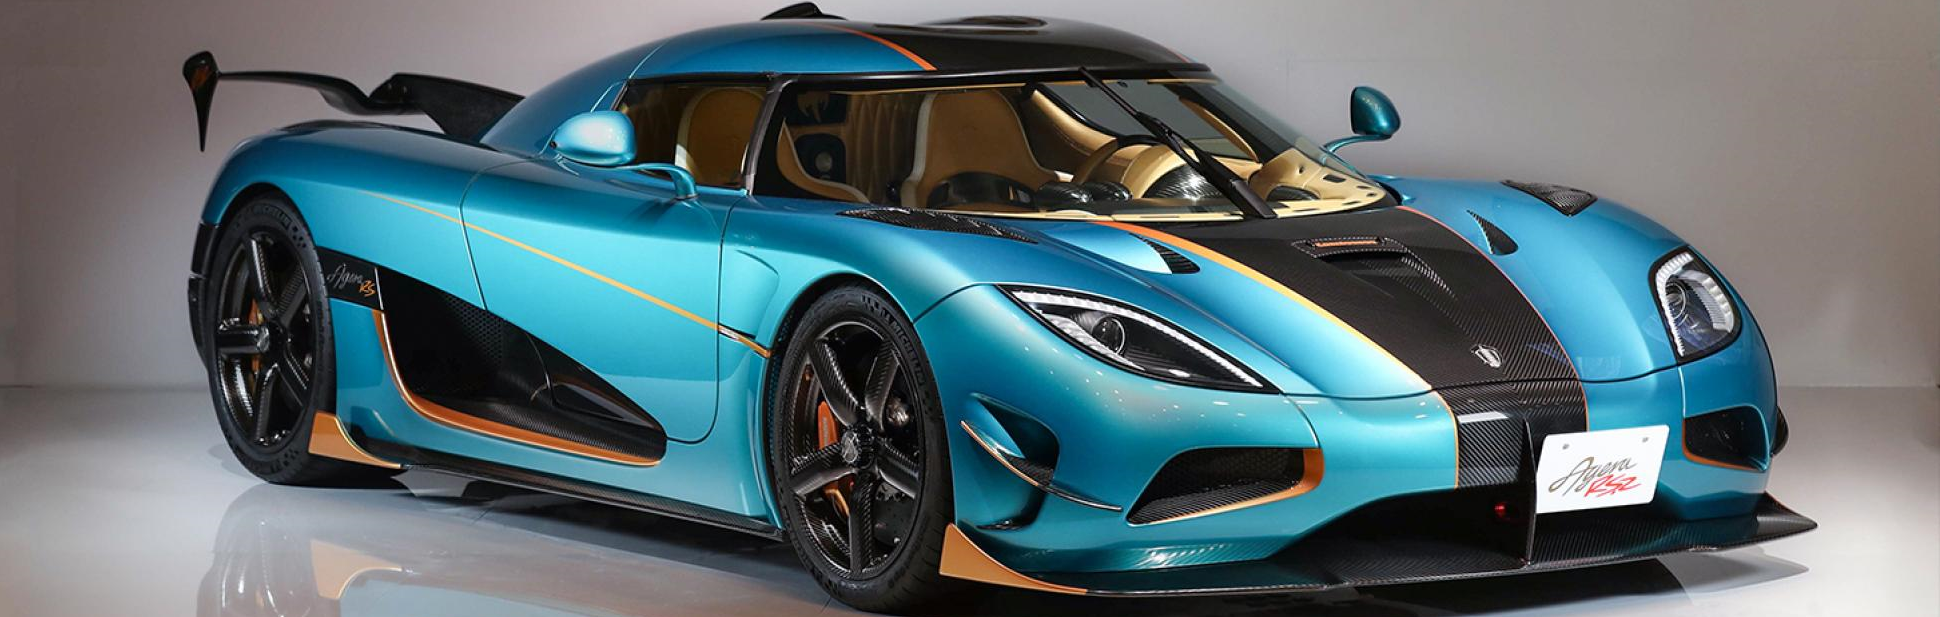 The Swedish automaker recently announced the arrival of the Koenigsegg Agera RSR during an event held in Tokyo, Japan. Only three examples of the Agera RSR will be produced and all three examples will be delivered to Japan. The RSR is a variant of the Koenisegg RS and includes a massive rear spoiler along with a roof mounted air intake scoop that is similar to what is found on the One:1.